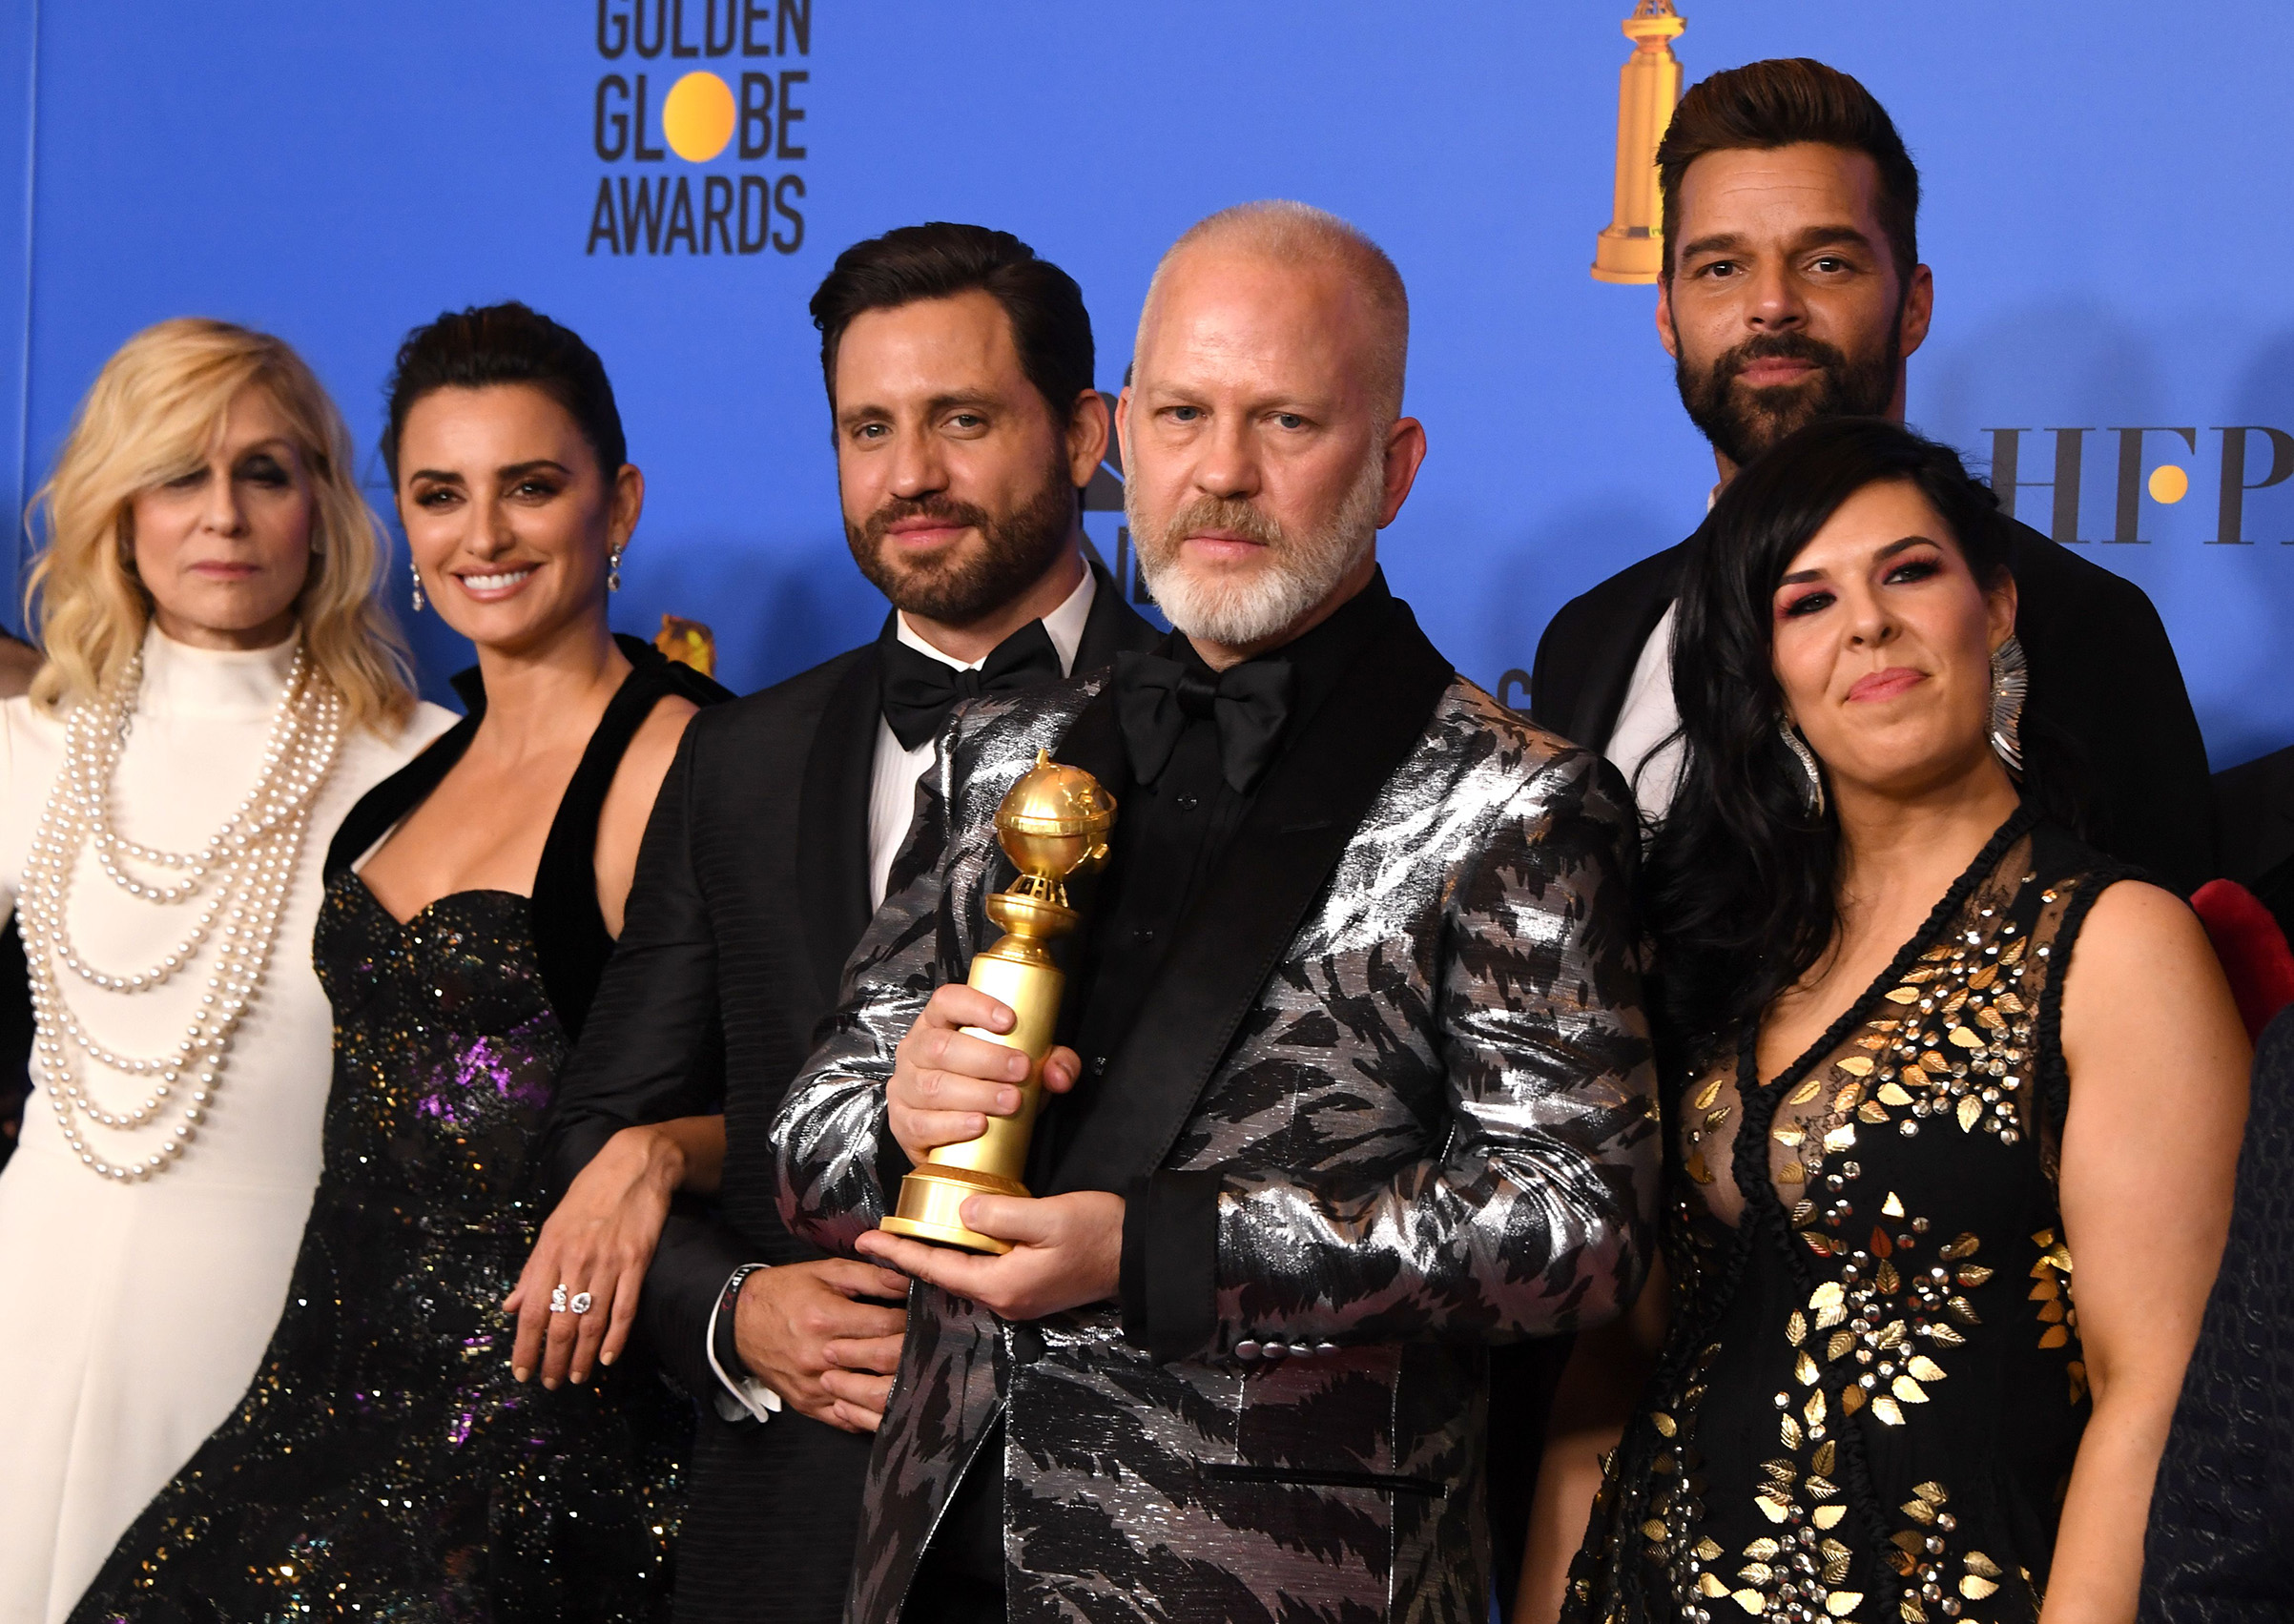 Best Limited Series or Motion Picture Made for Television  The Assassination of Gianni Versace  winners producer Ryan Murphy and actors Penelope Cruz, Edgar Ramirez, Ricky Martin pose with the award during the 76th annual Golden Globe Awards.